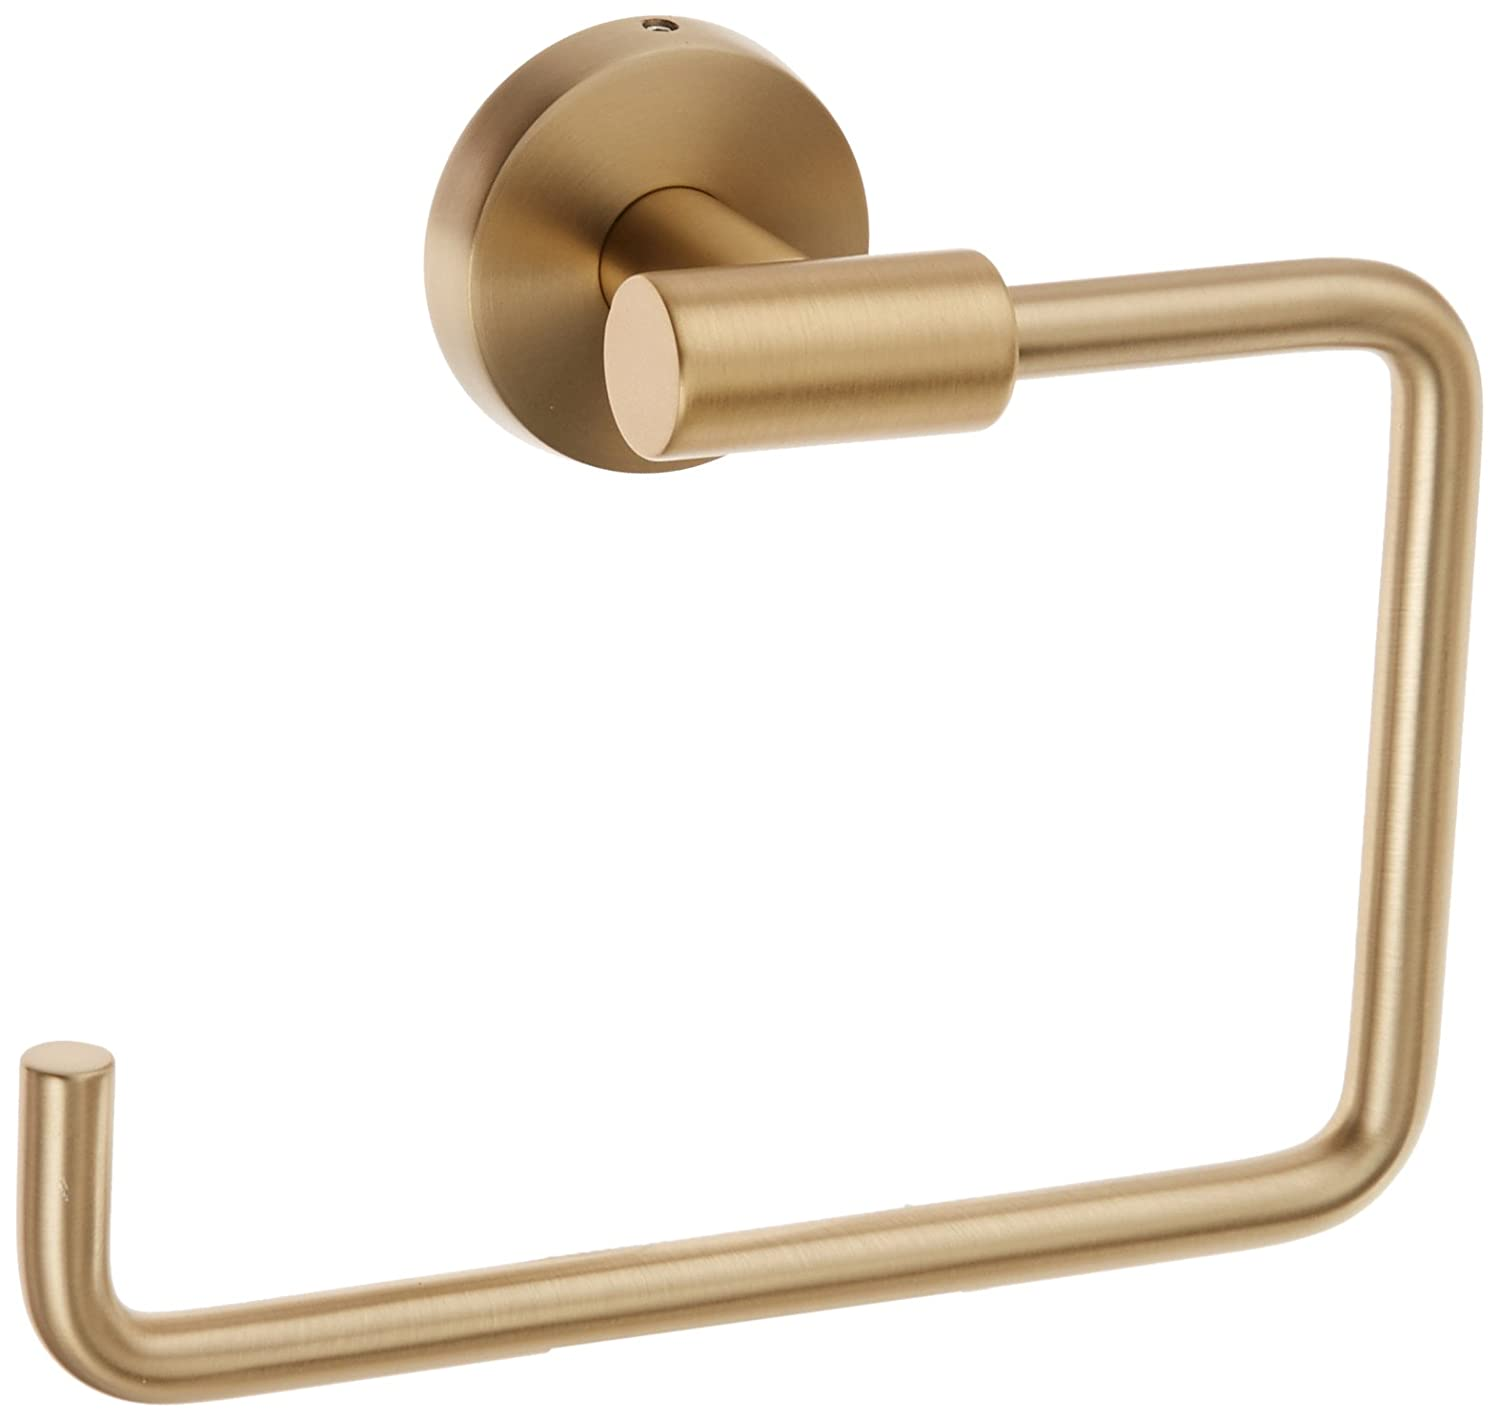 Amerock BH26541BBZ Arrondi 6-7/16in(164mm) LGTH Towel Ring - Brushed Bronze/Golden Champagne